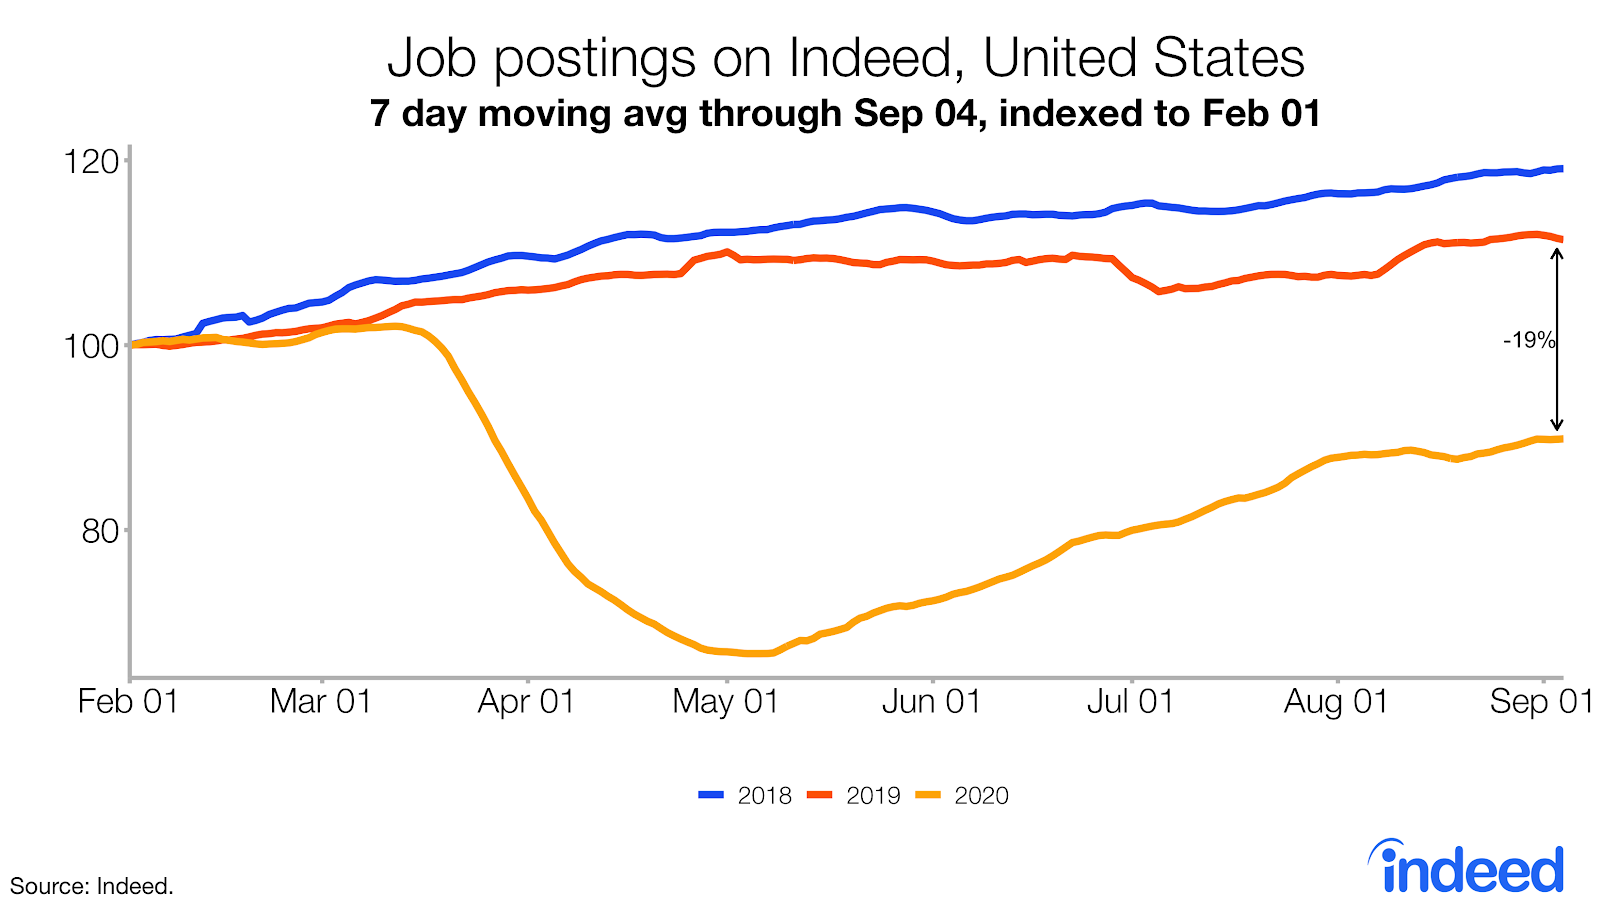 Line graph showing trends in job postings on Indeed US following COVID-19 pandemic